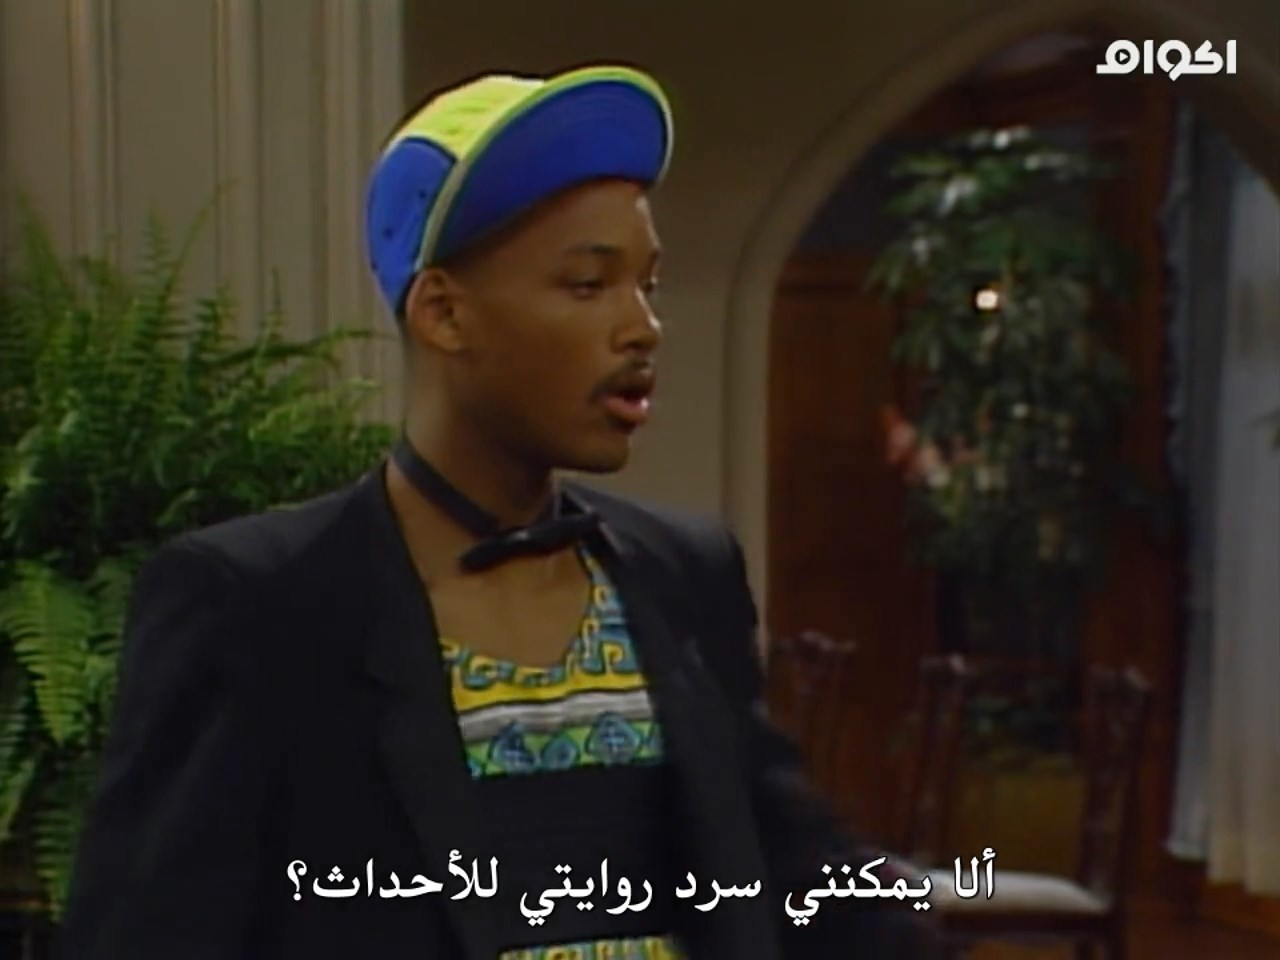 The Fresh Prince of Bel-Air,The Fresh Prince of Bel-Air S01,The Fresh Prince of Bel-Air Season 1,The Fresh Prince of Bel-Air مترجم,The Fresh Prince of Bel-Air Will Smith,ويل سميث